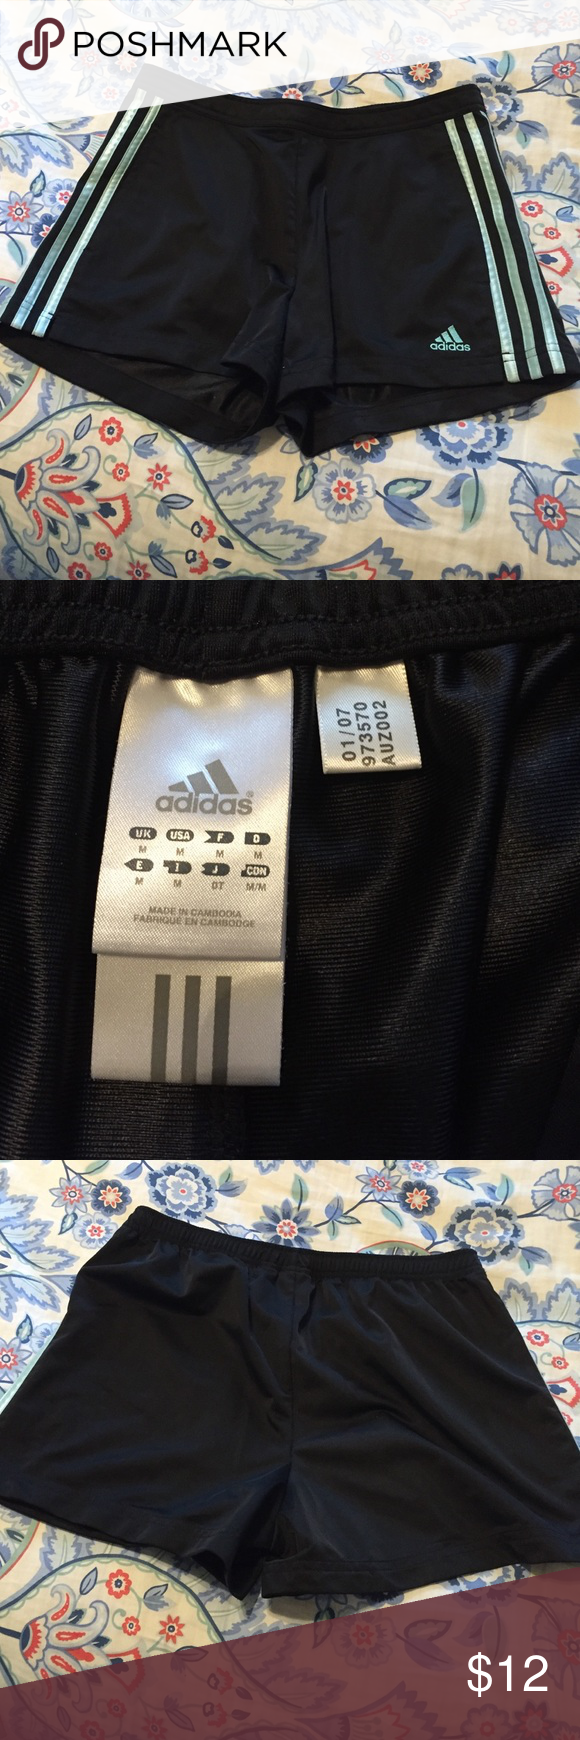 Adidas athletic shorts Adorable shorts. Black with pale blue stripes. adidas Shorts